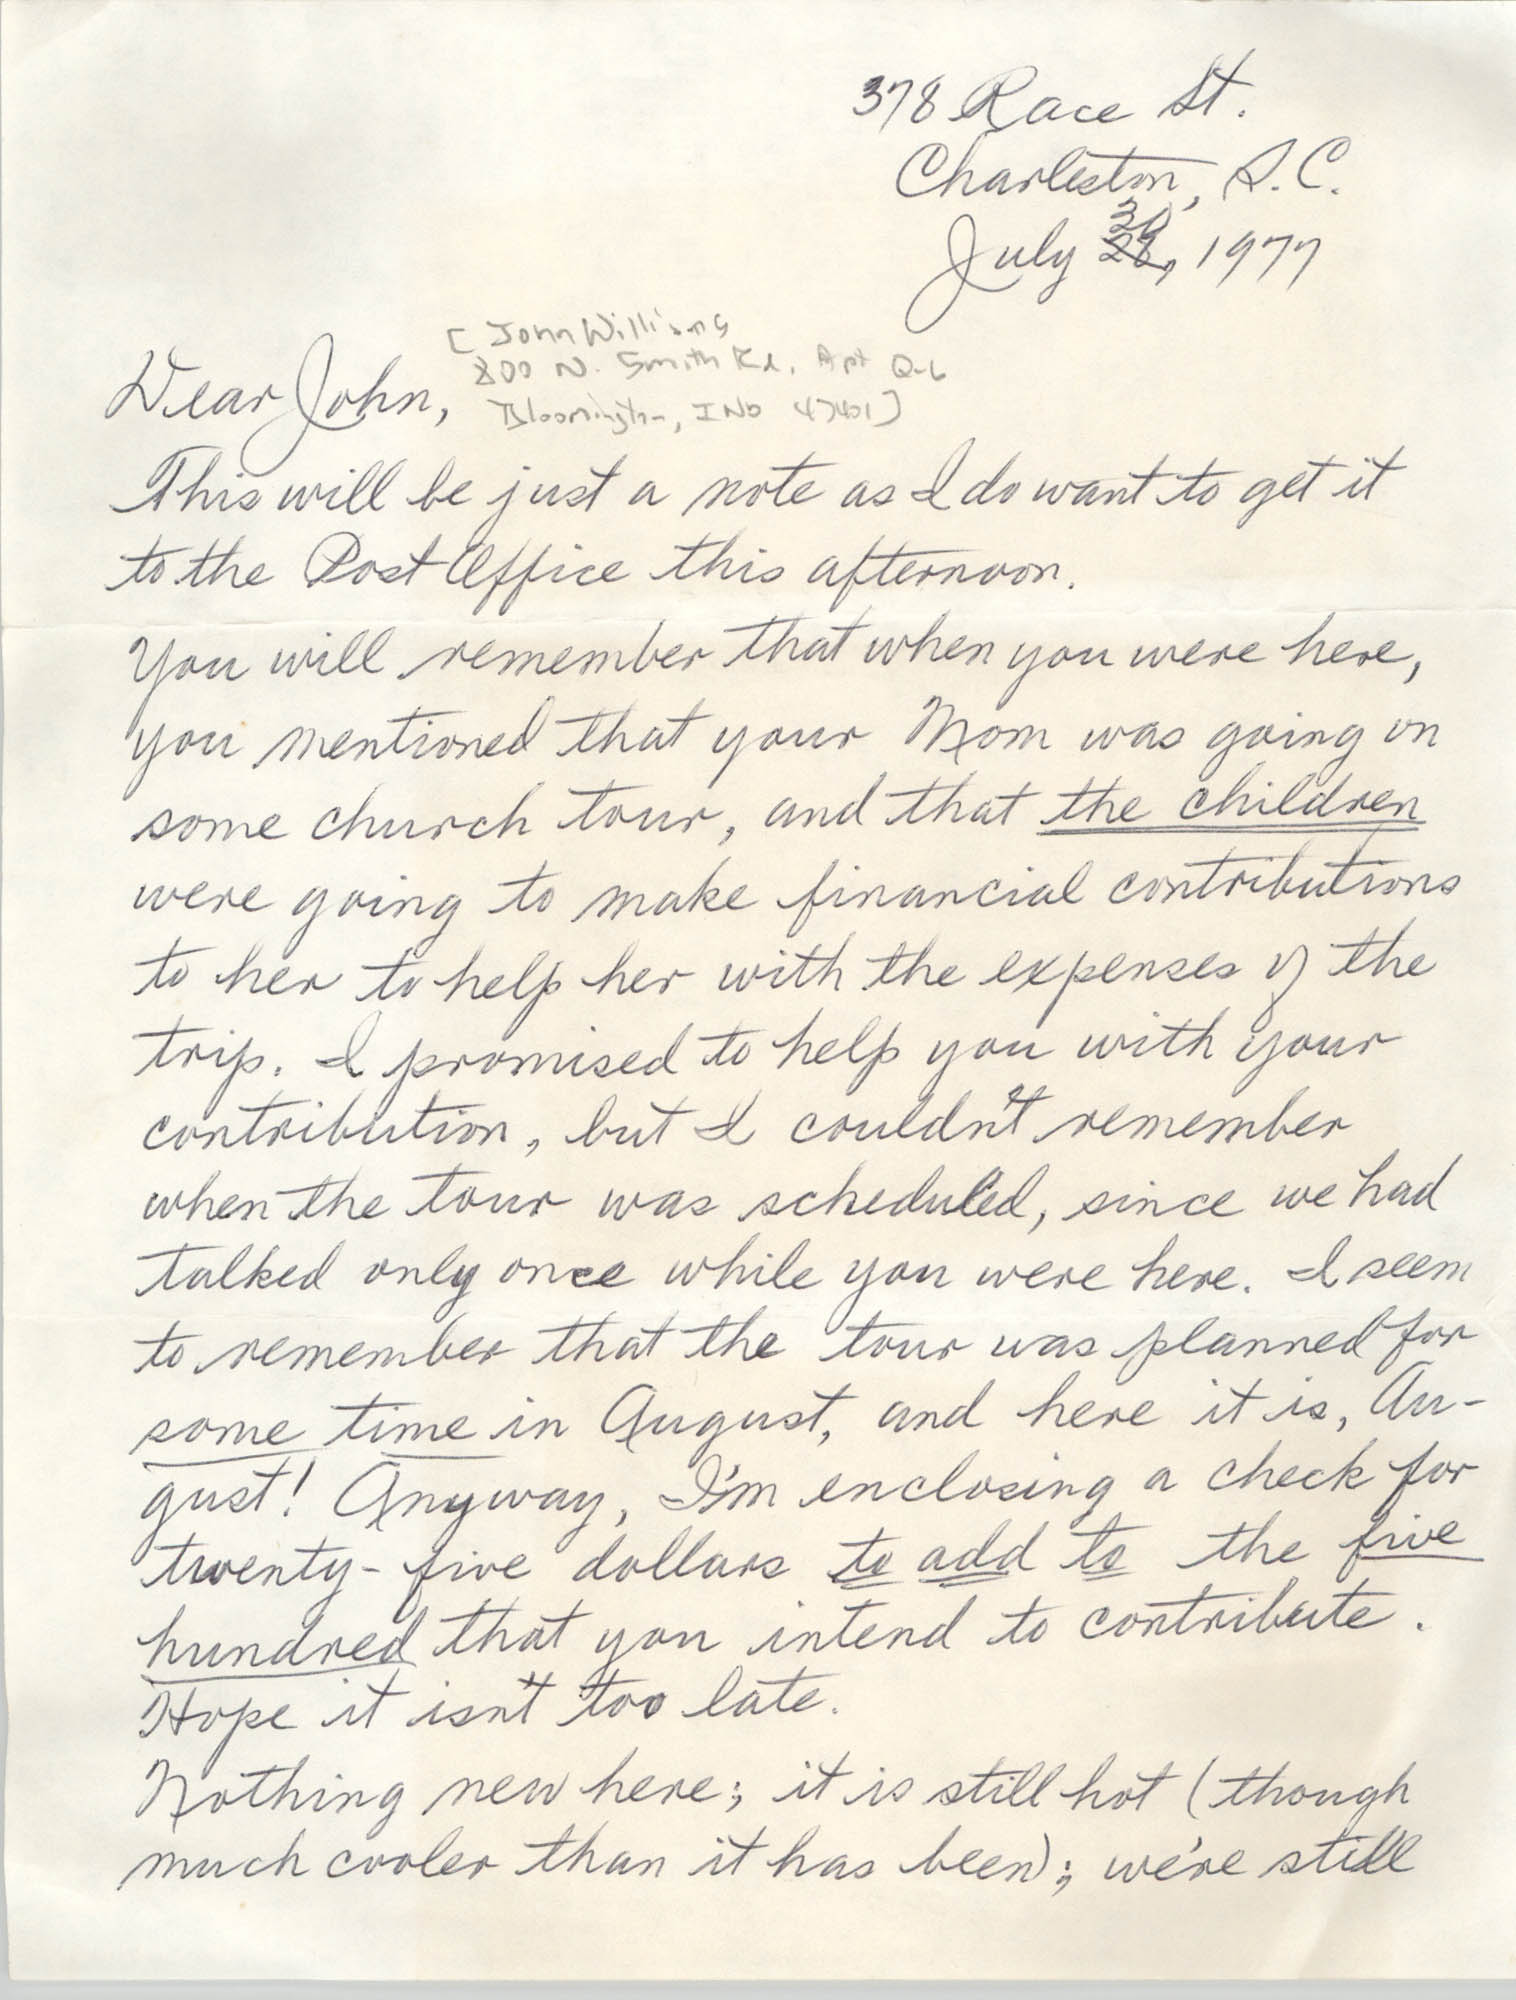 Letter from Eugene C. Hunt to John Williams, July 30, 1977